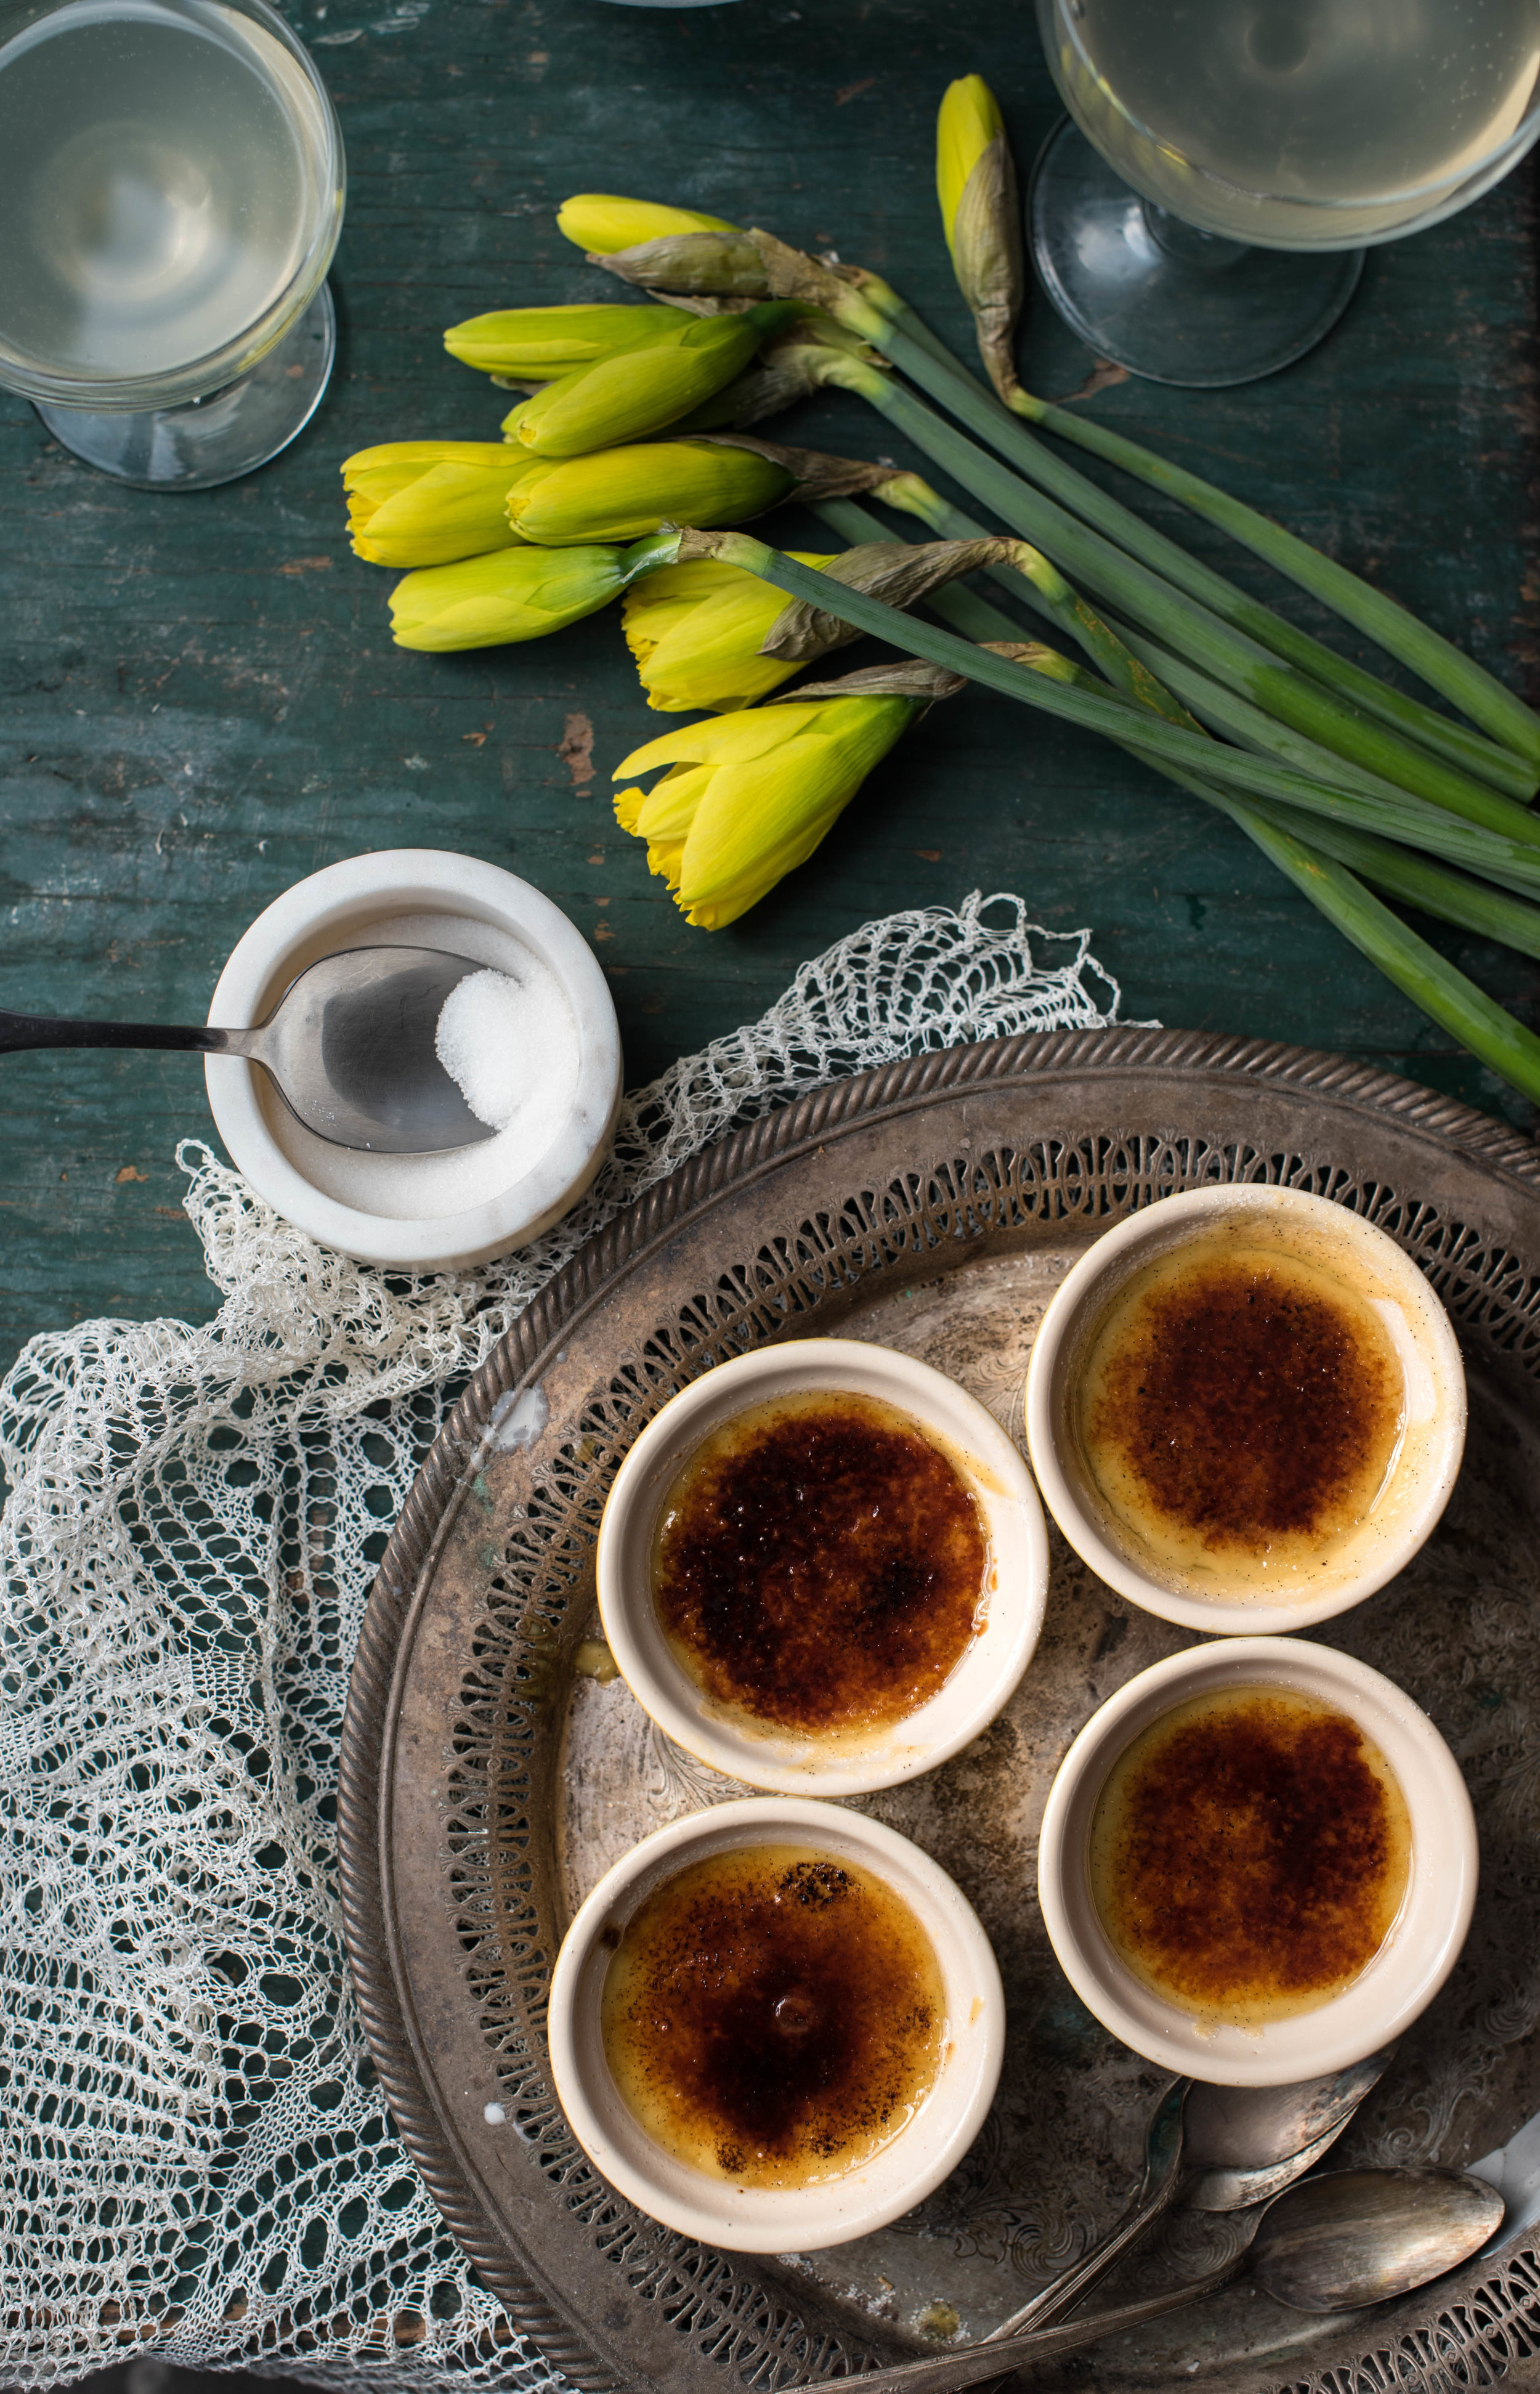 ROSE & IVY Journal Cook the Book | 'The Cottage Kitchen' Crema Catalana